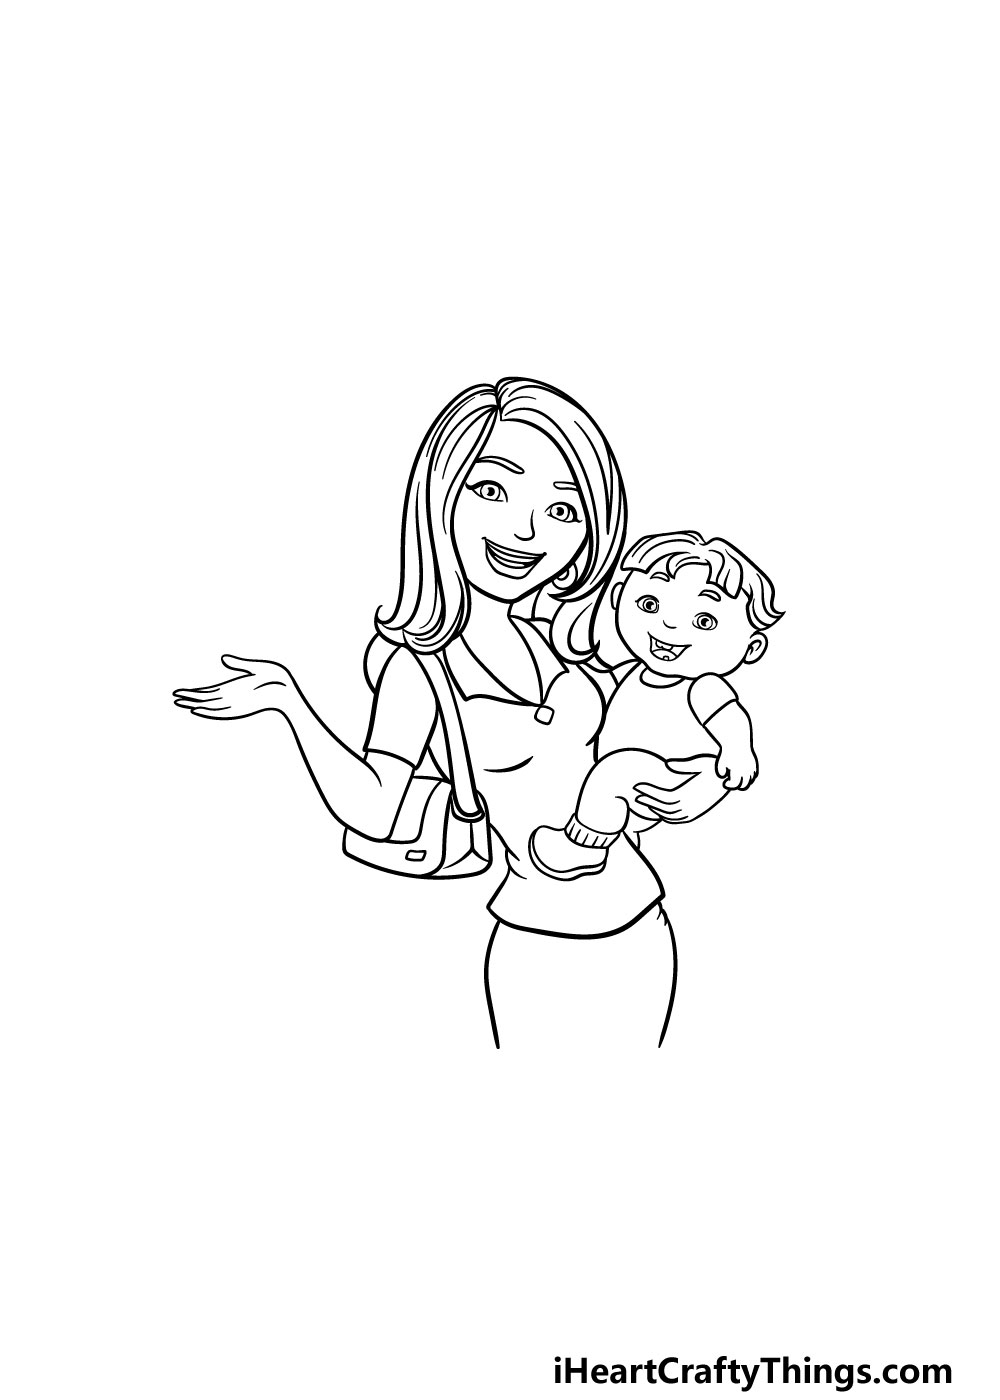 drawing a mom step 5